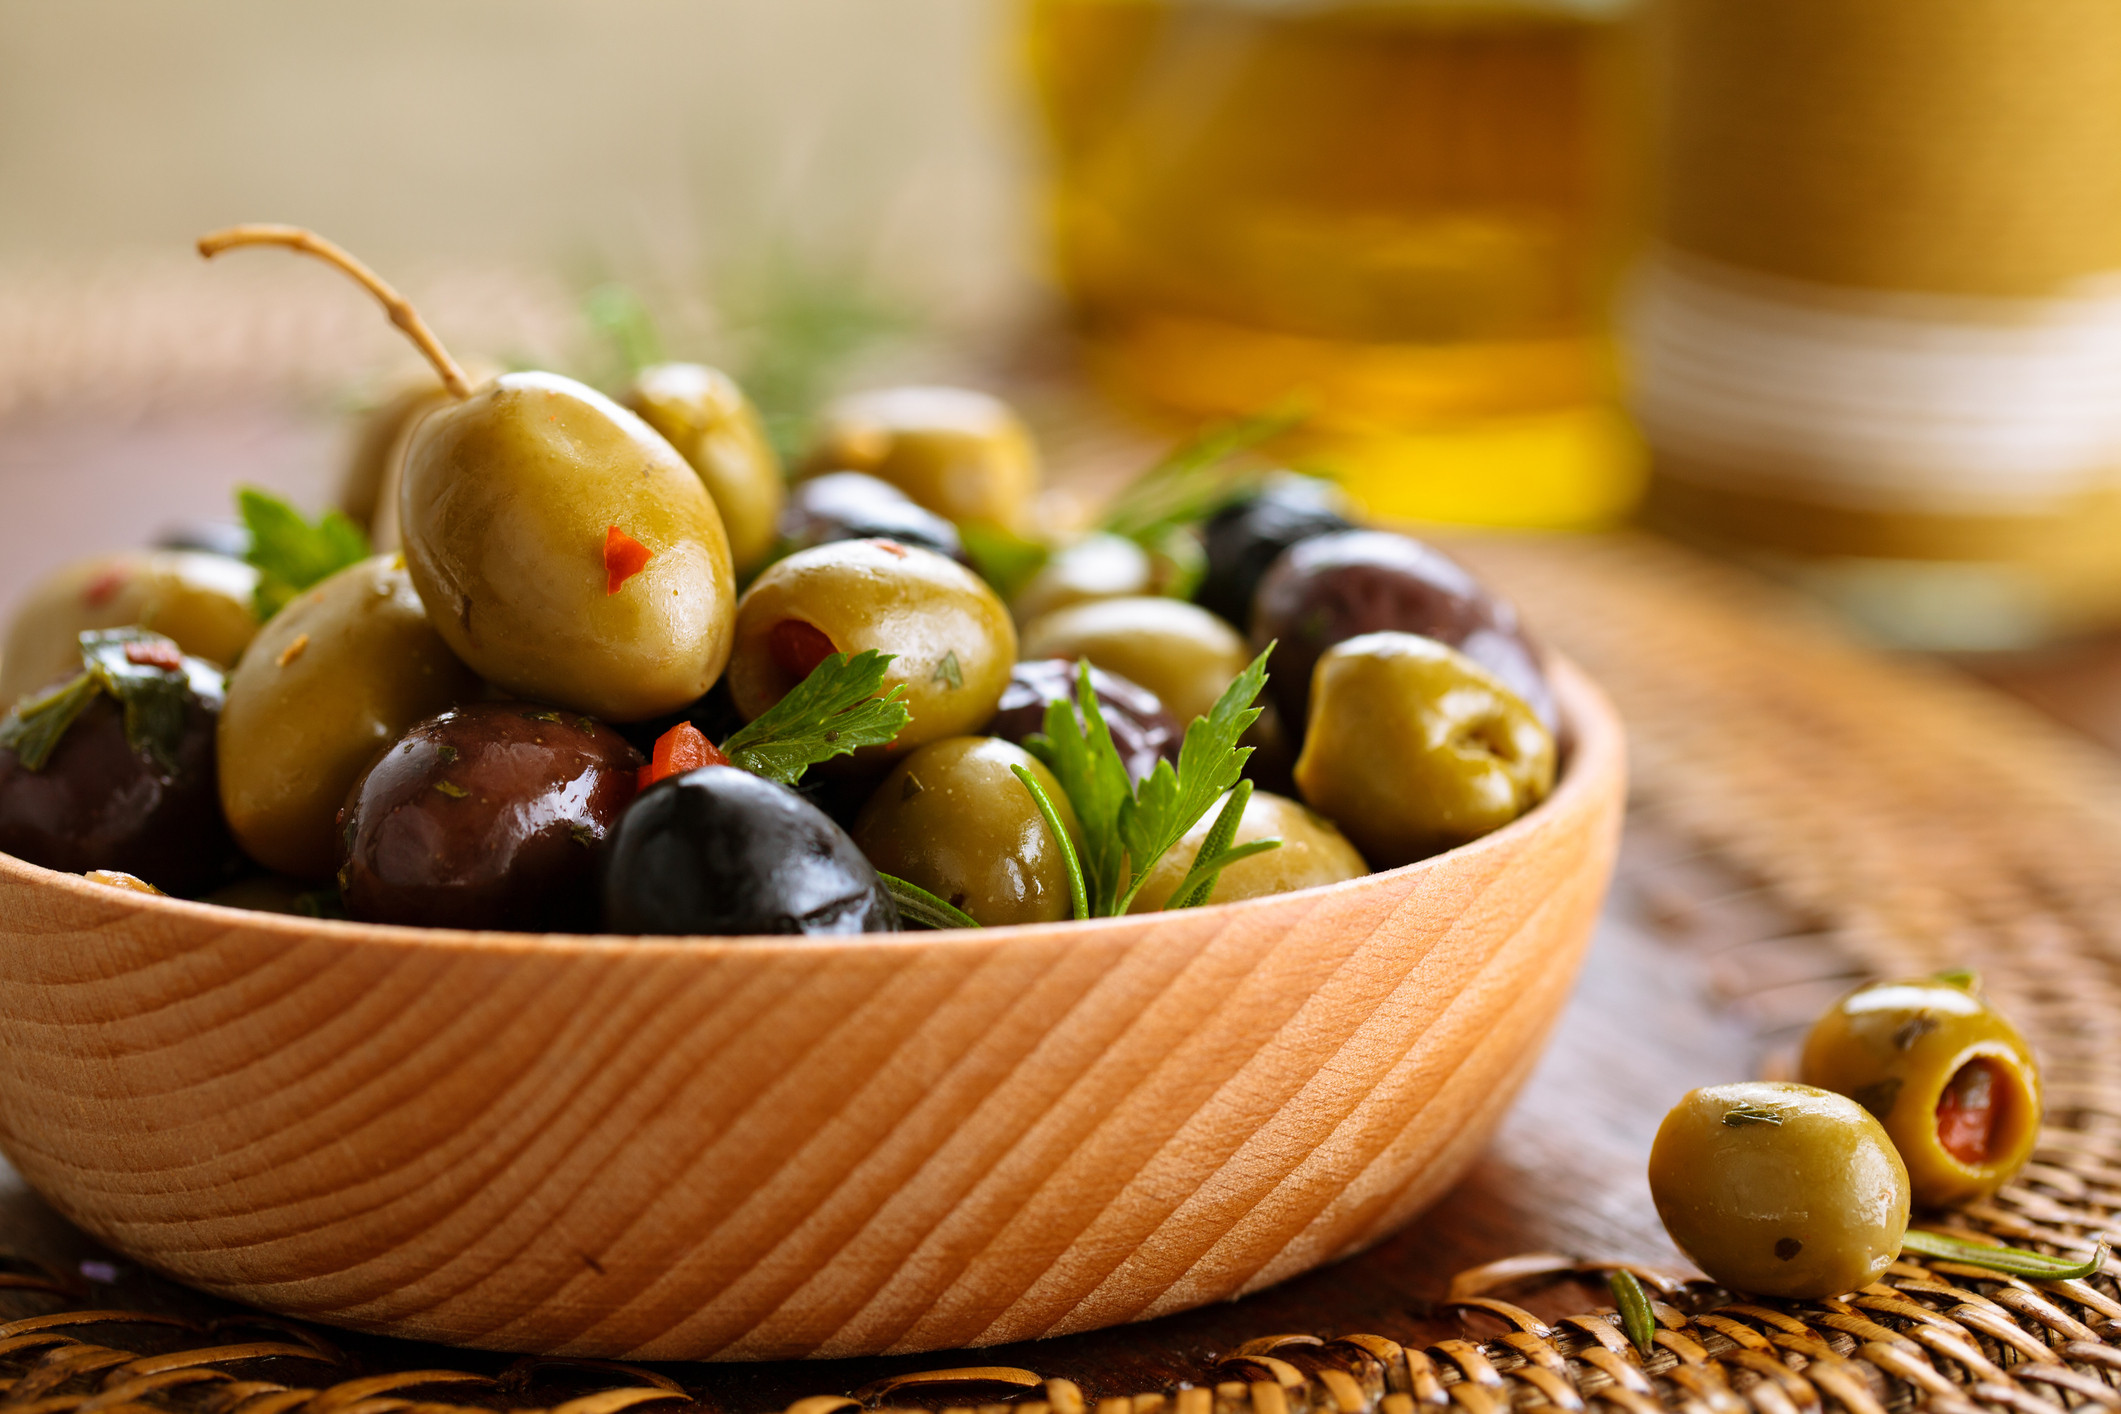 Keto Diet Olives  OLIVES This low carb snack fights inflammation Alzheimer